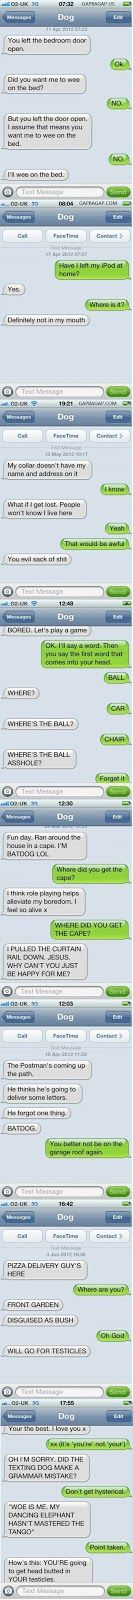 Top 10 Hilarious Text Messages ft. Funny Dogs